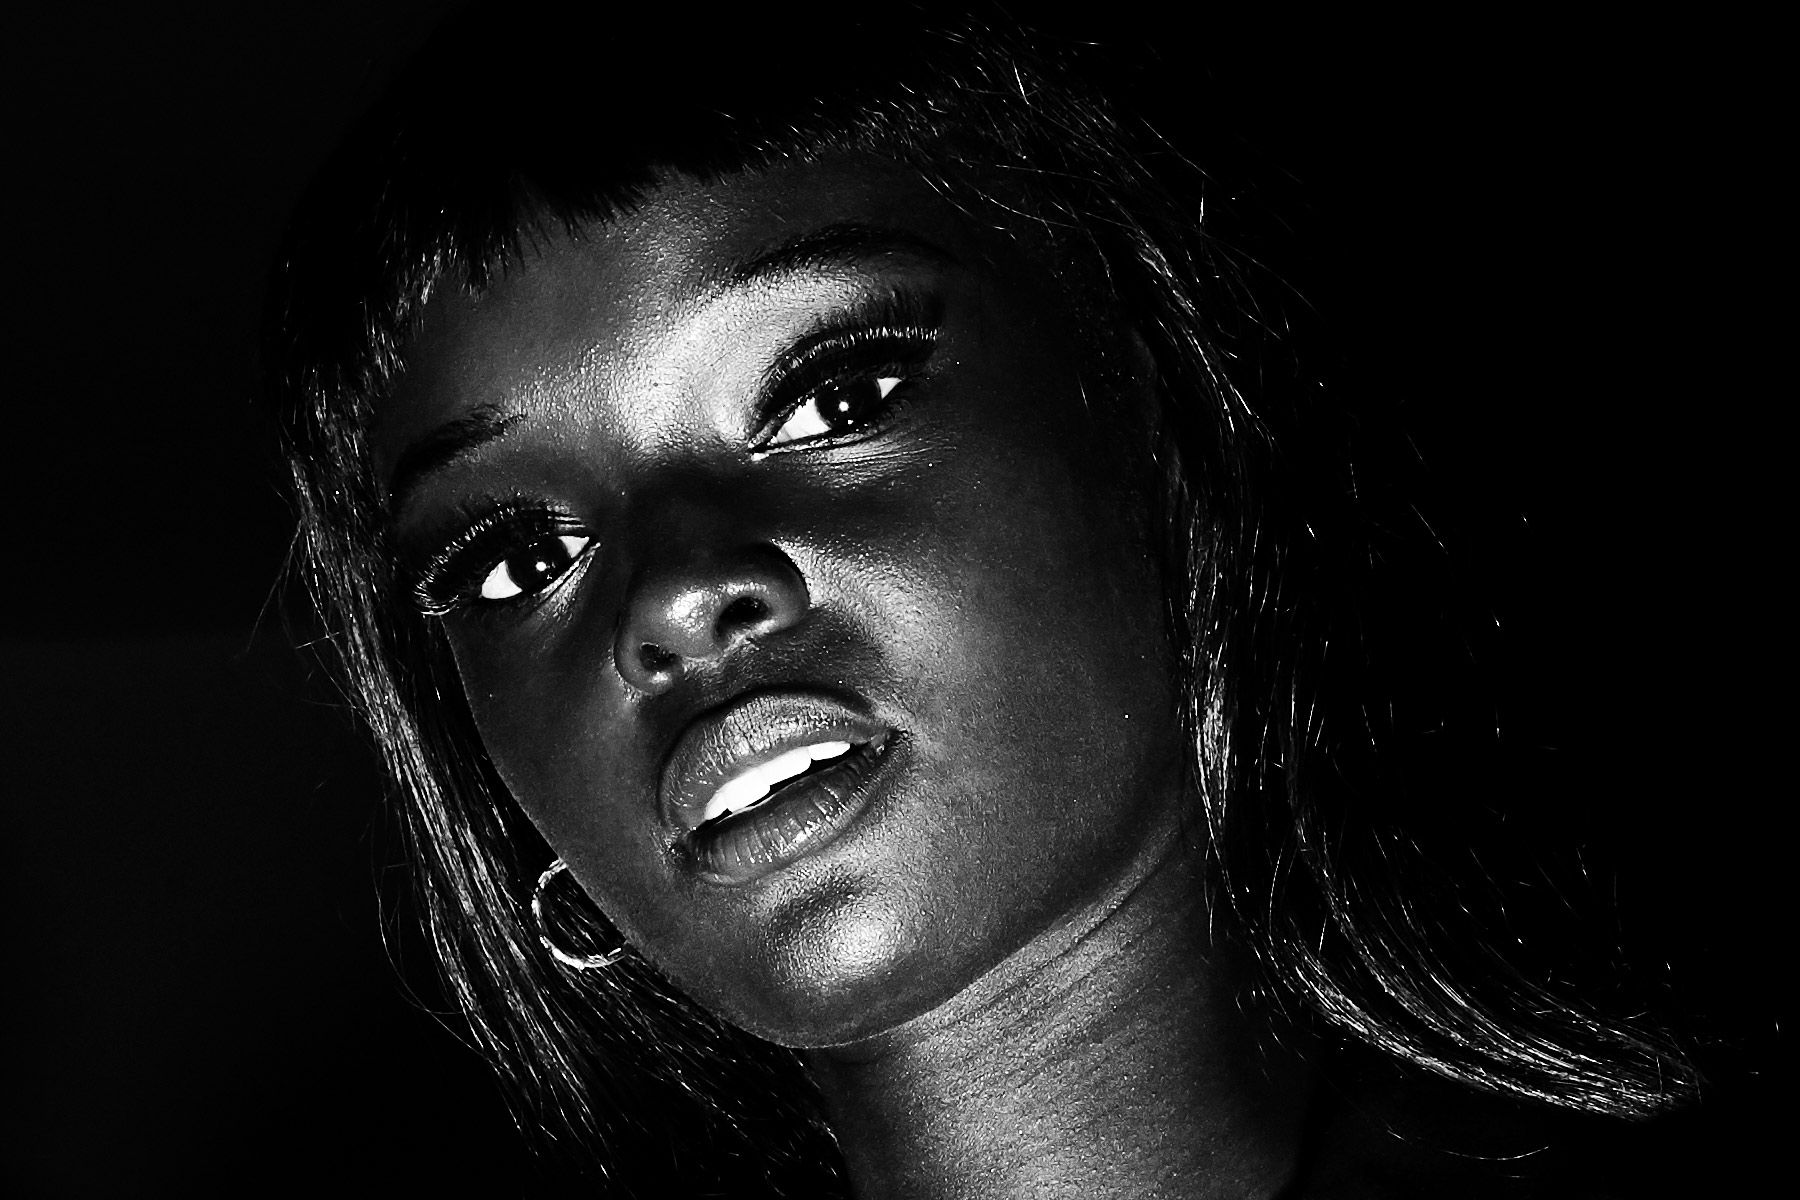 Model Duckie Thot snapped backstage at the Christian Cowan Spring/Summer 2019 show. Photography by Alexander Thompson for Ponyboy magazine.